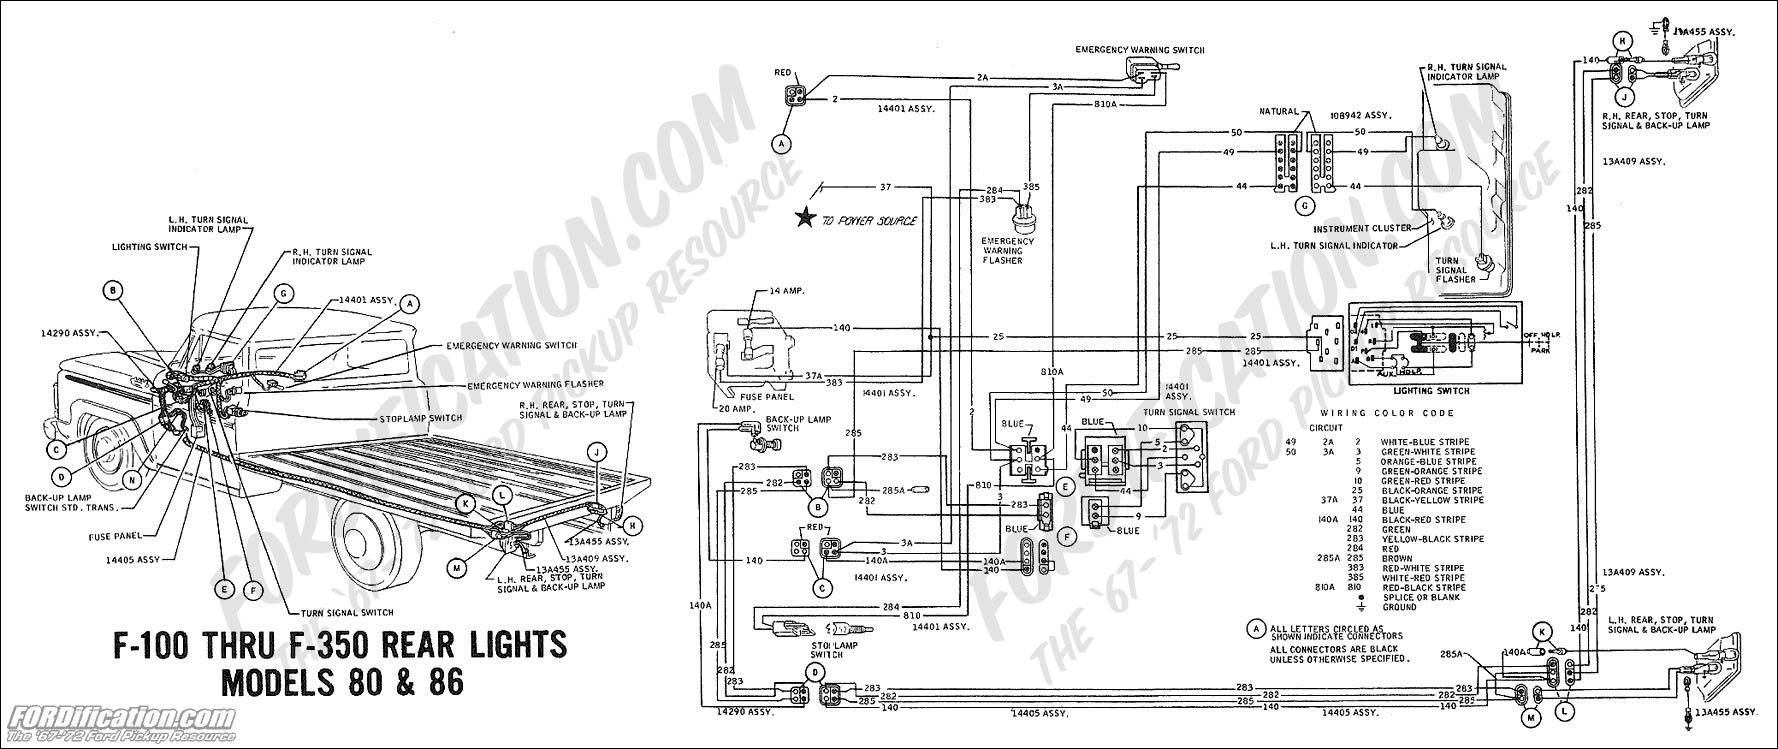 38062 1965 Chevy C10 Truck Wiring Diagram Tail Lights | Wiring ... 1965 chevy c10 fuse box diagram Wiring Resources